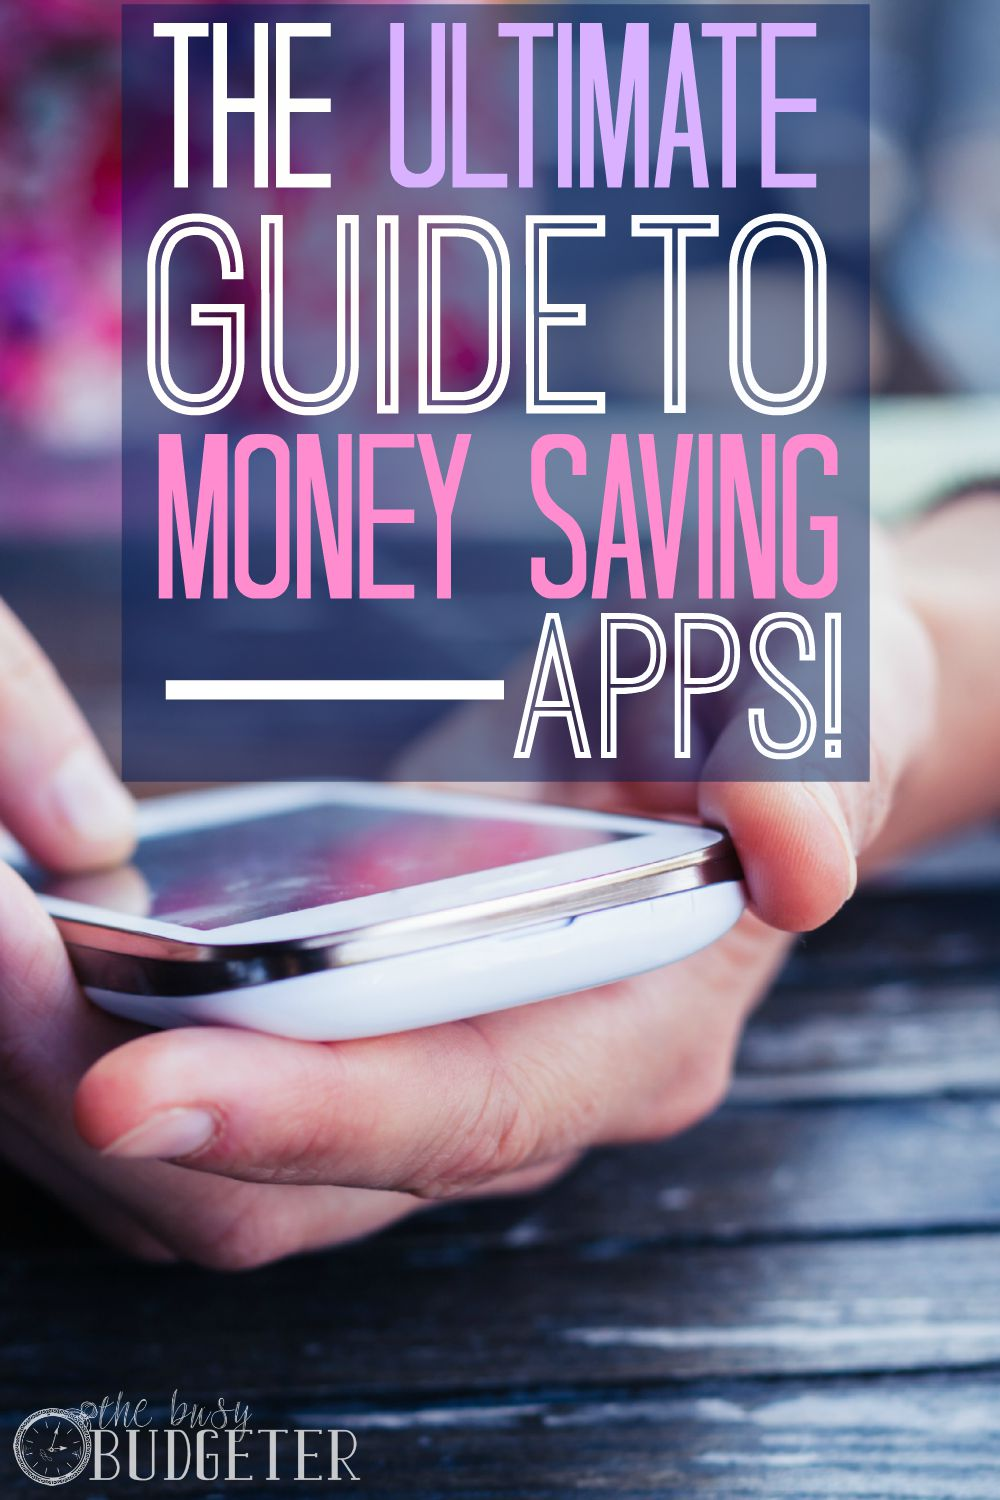 The Ultimate Guide To Money Saving Apps!